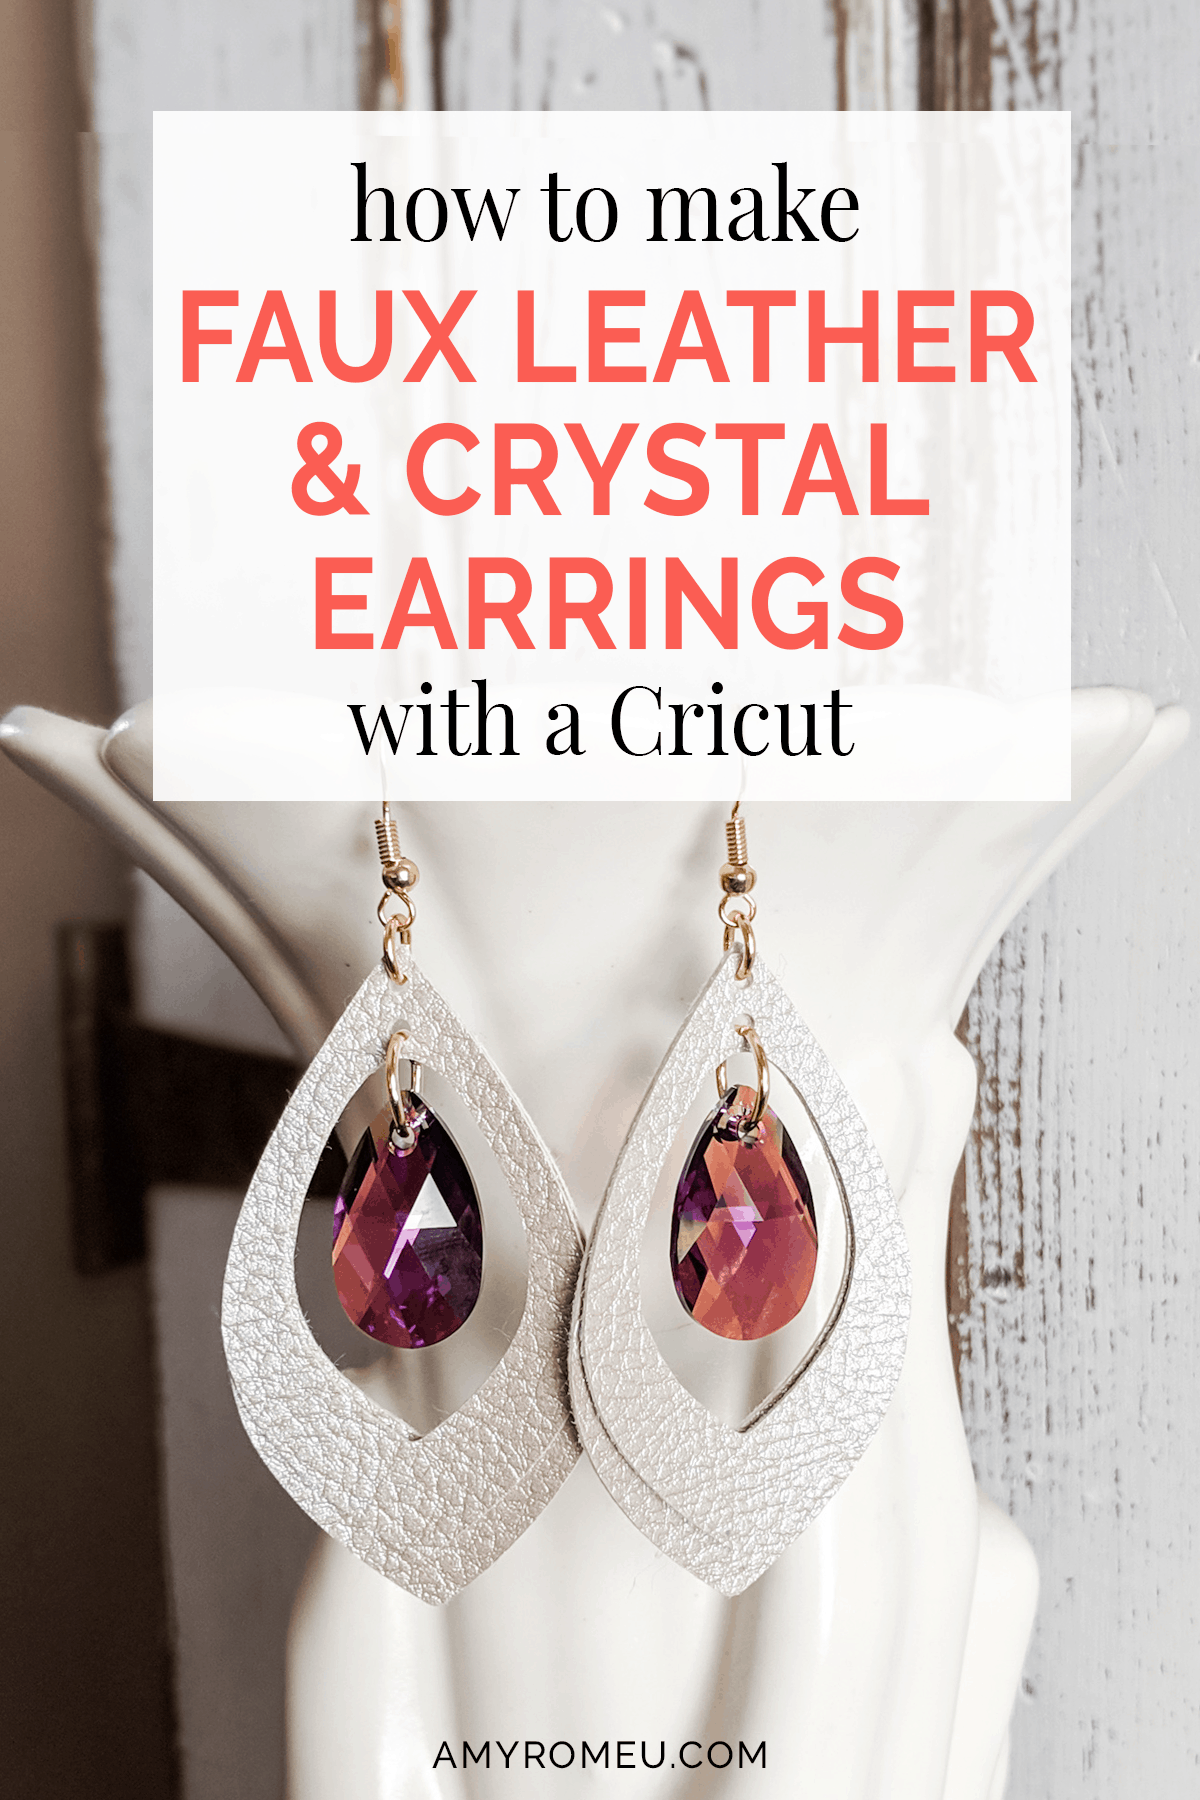 Over 50 Creative Cricut Project Ideas For All Levelscricut Projectsdiy Leather Earrings With The Cricut Ma In 2020 Leather Earrings Hammered Hoop Earrings Faux Leather